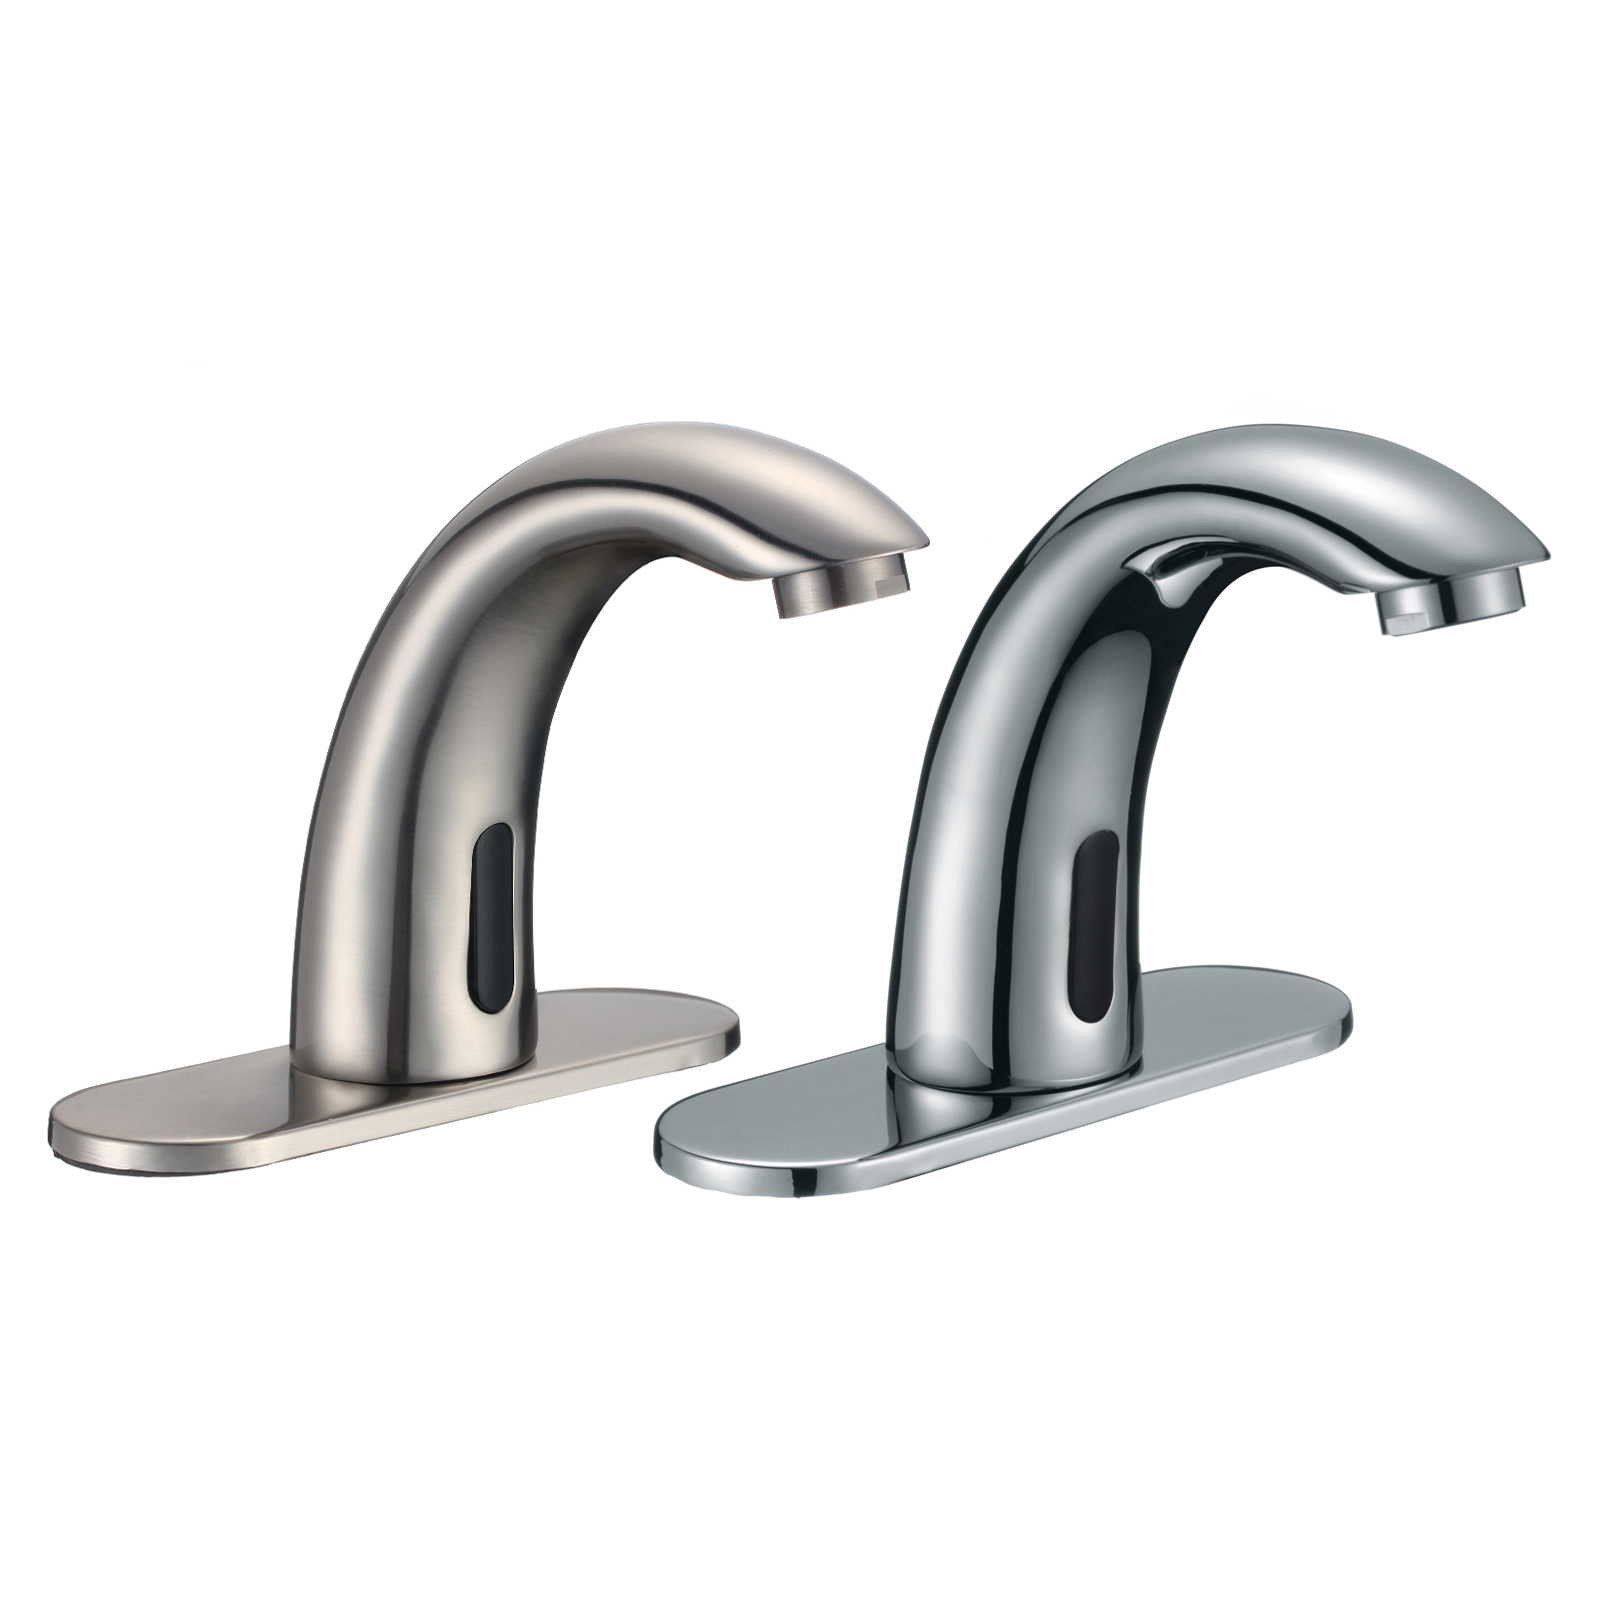 Touchless Bathroom Sink Faucet - Commercial Hands Free Tap ...